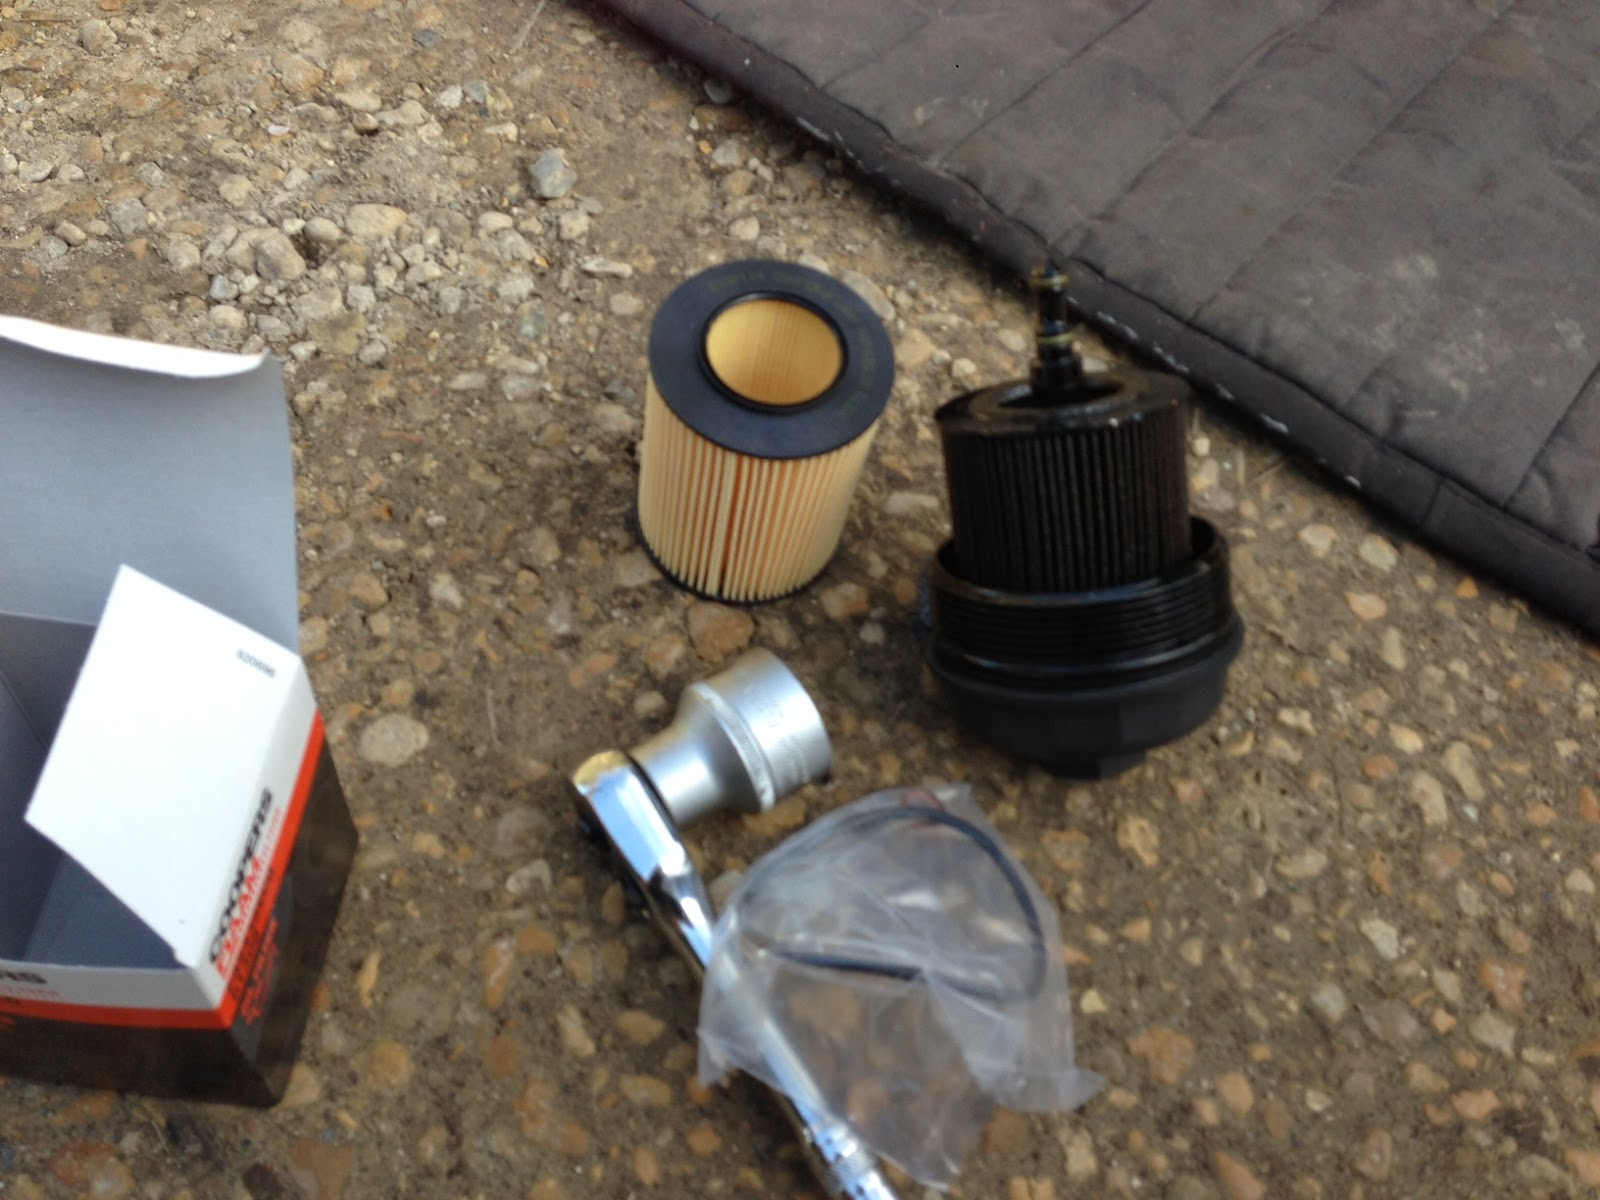 New and old oil filters with 36mm socket to undo the cartridge